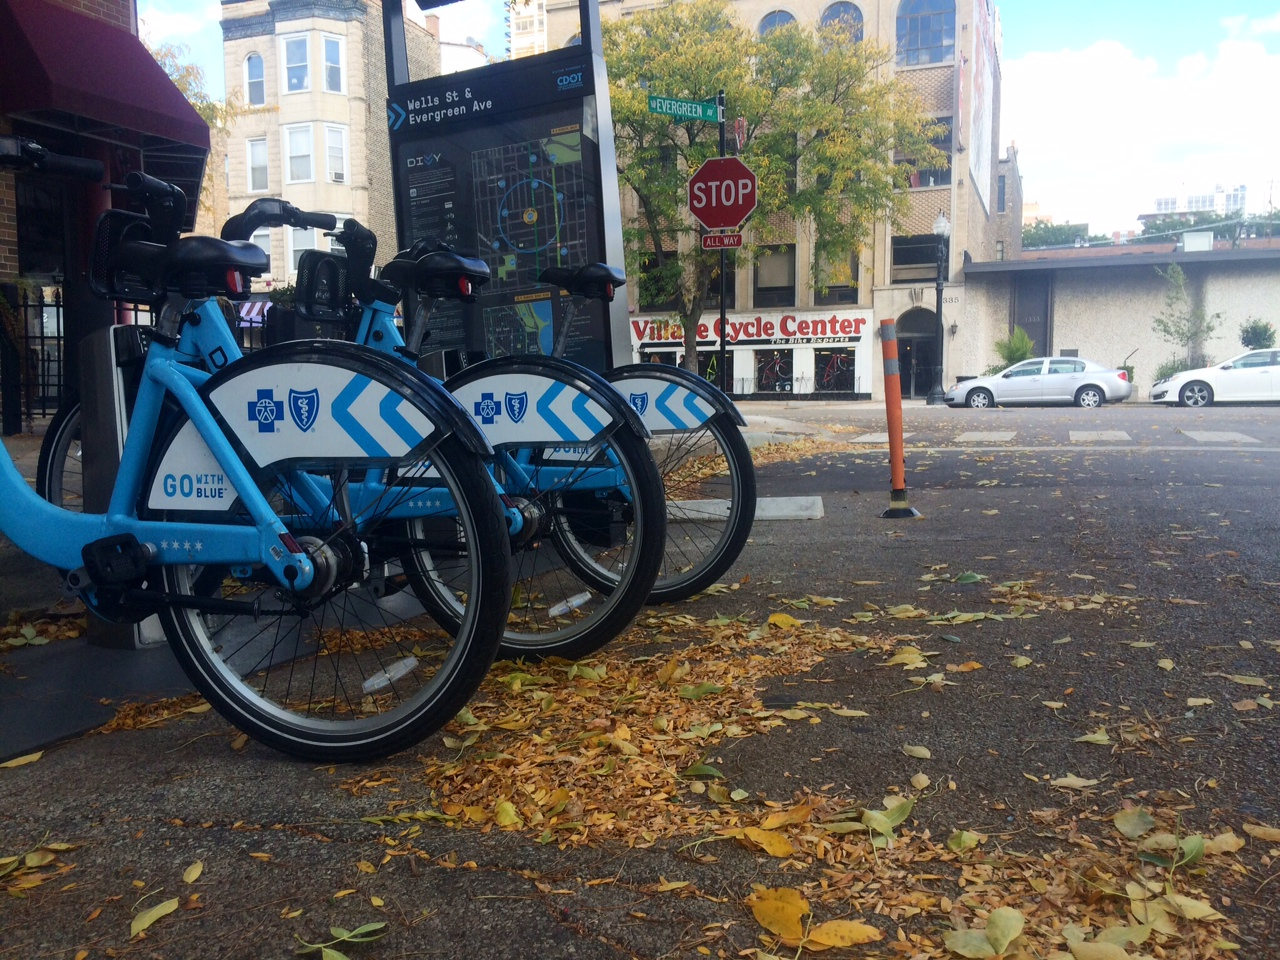 divvy station by village cycle center